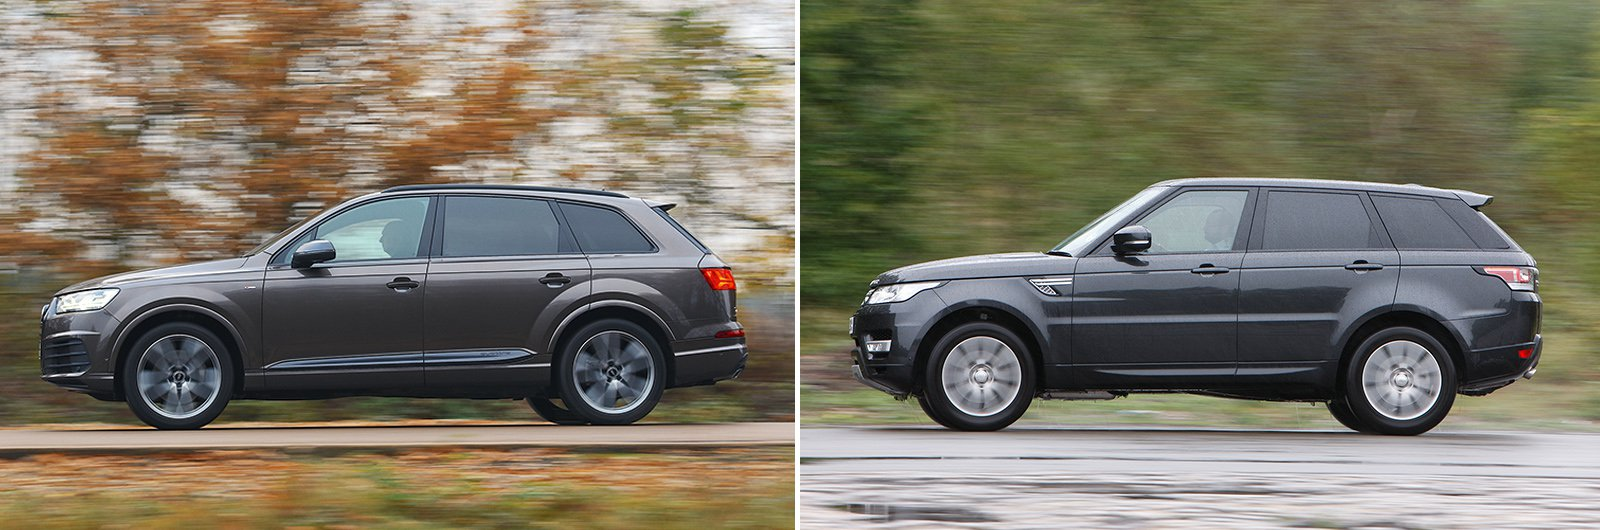 New Audi Q7 vs used Range Rover Sport – which is best?